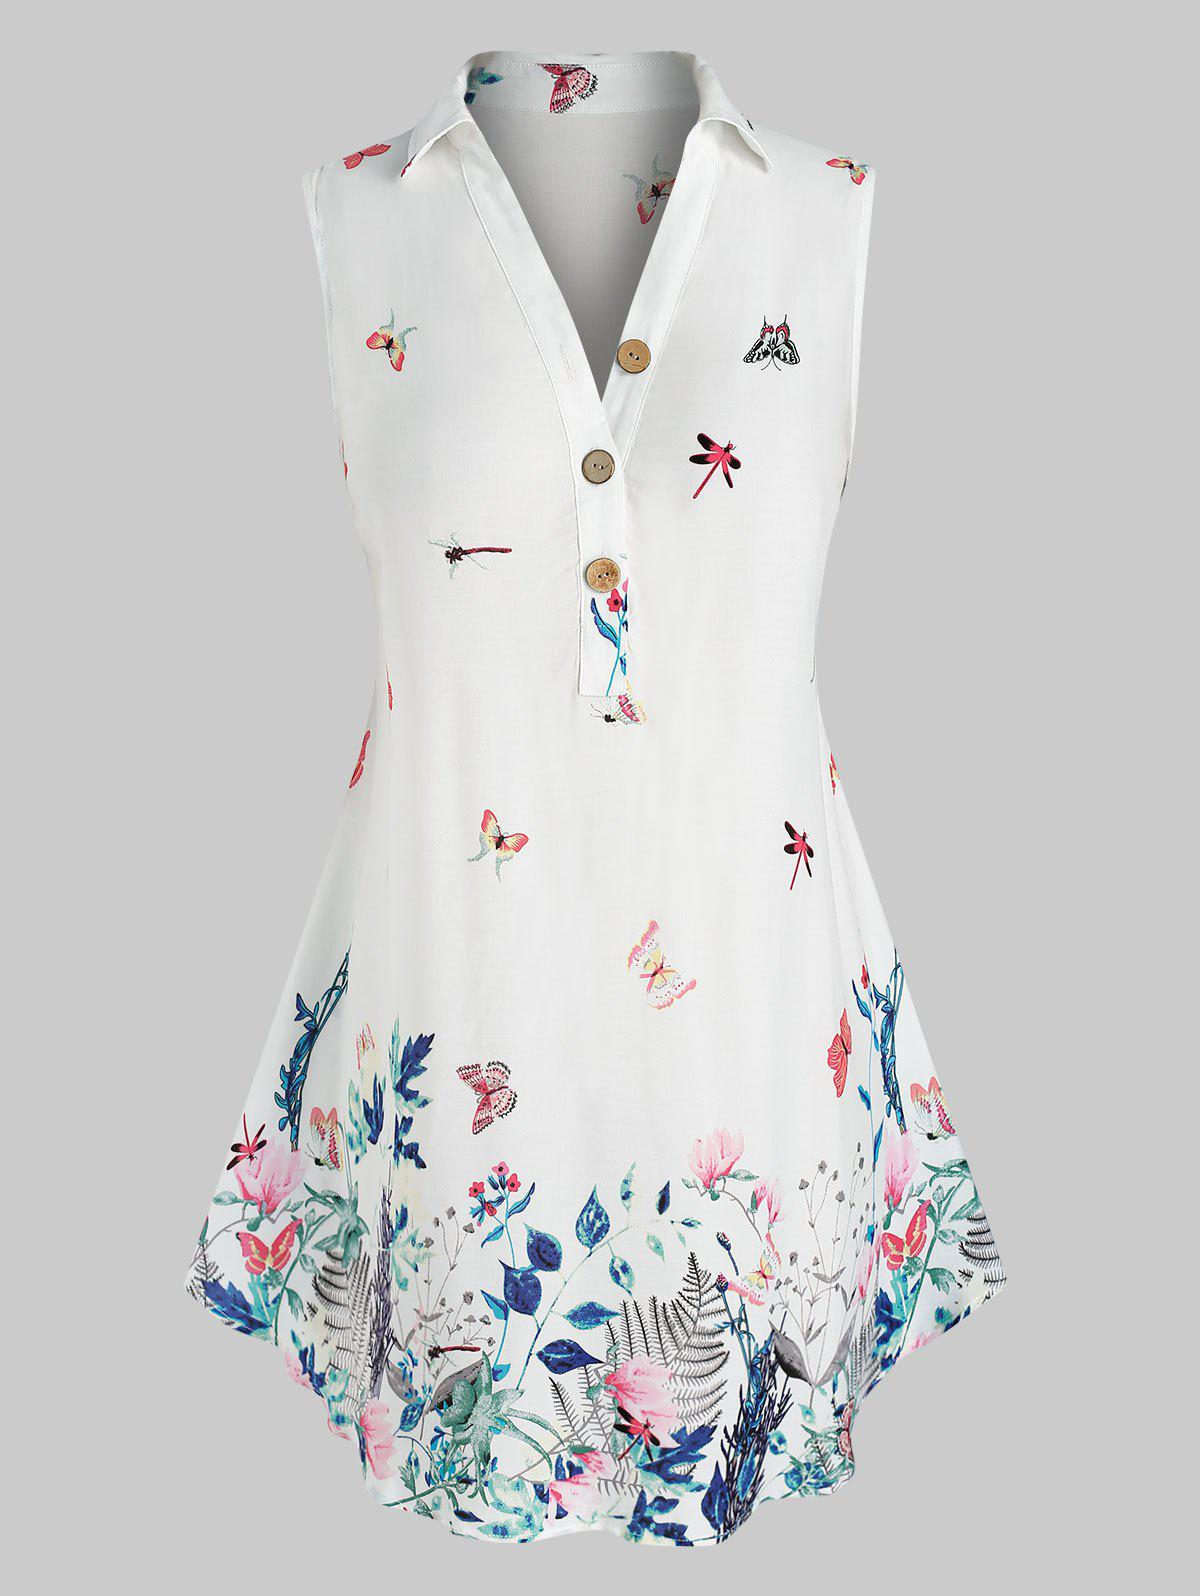 Plus Size Butterfly Floral Print Sleeveless Blouse - WHITE 5X